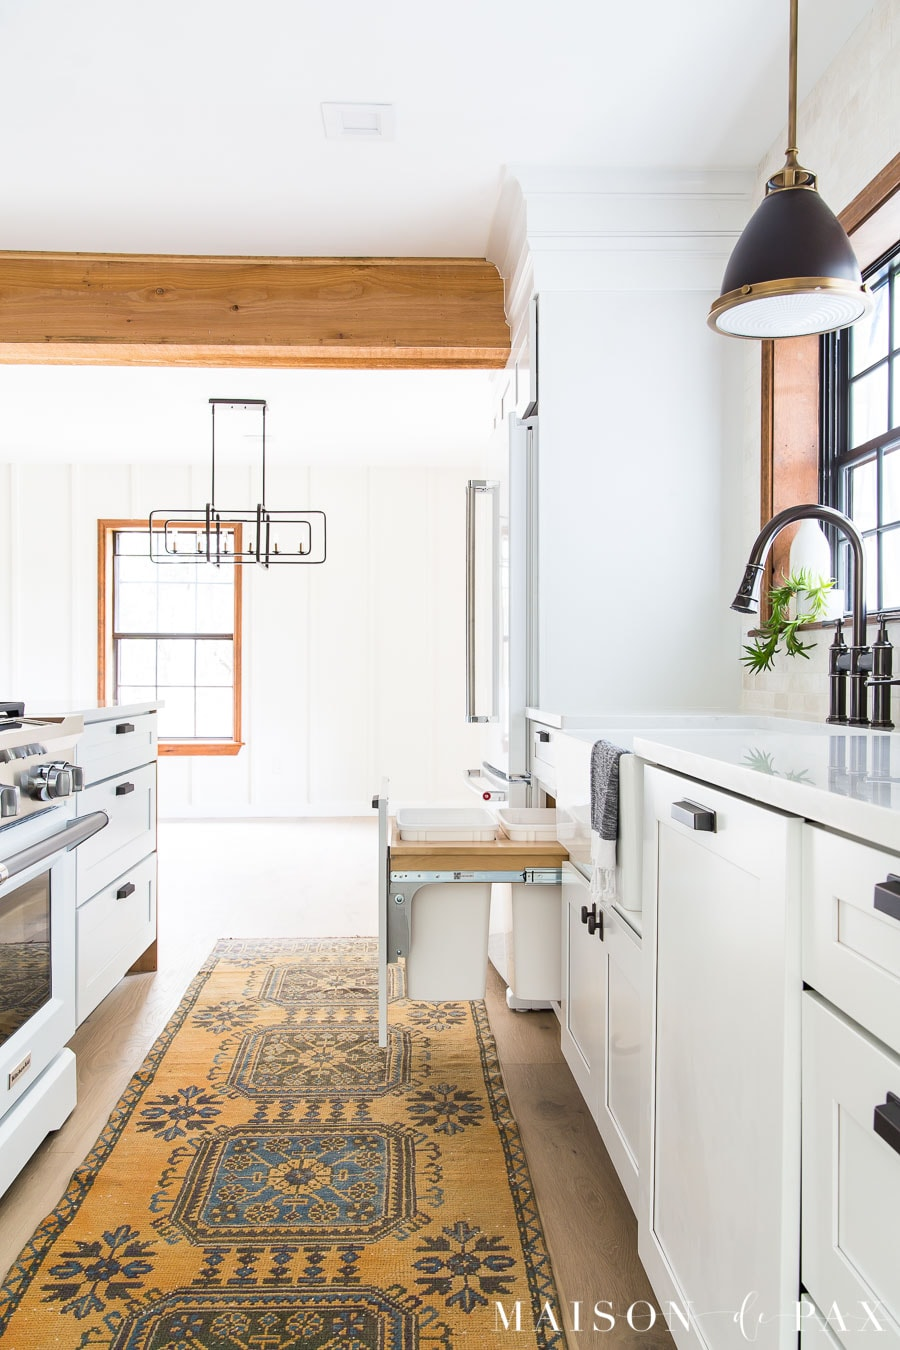 double trash pull out kitchen cabinets modern farmhouse | Maison de Pax